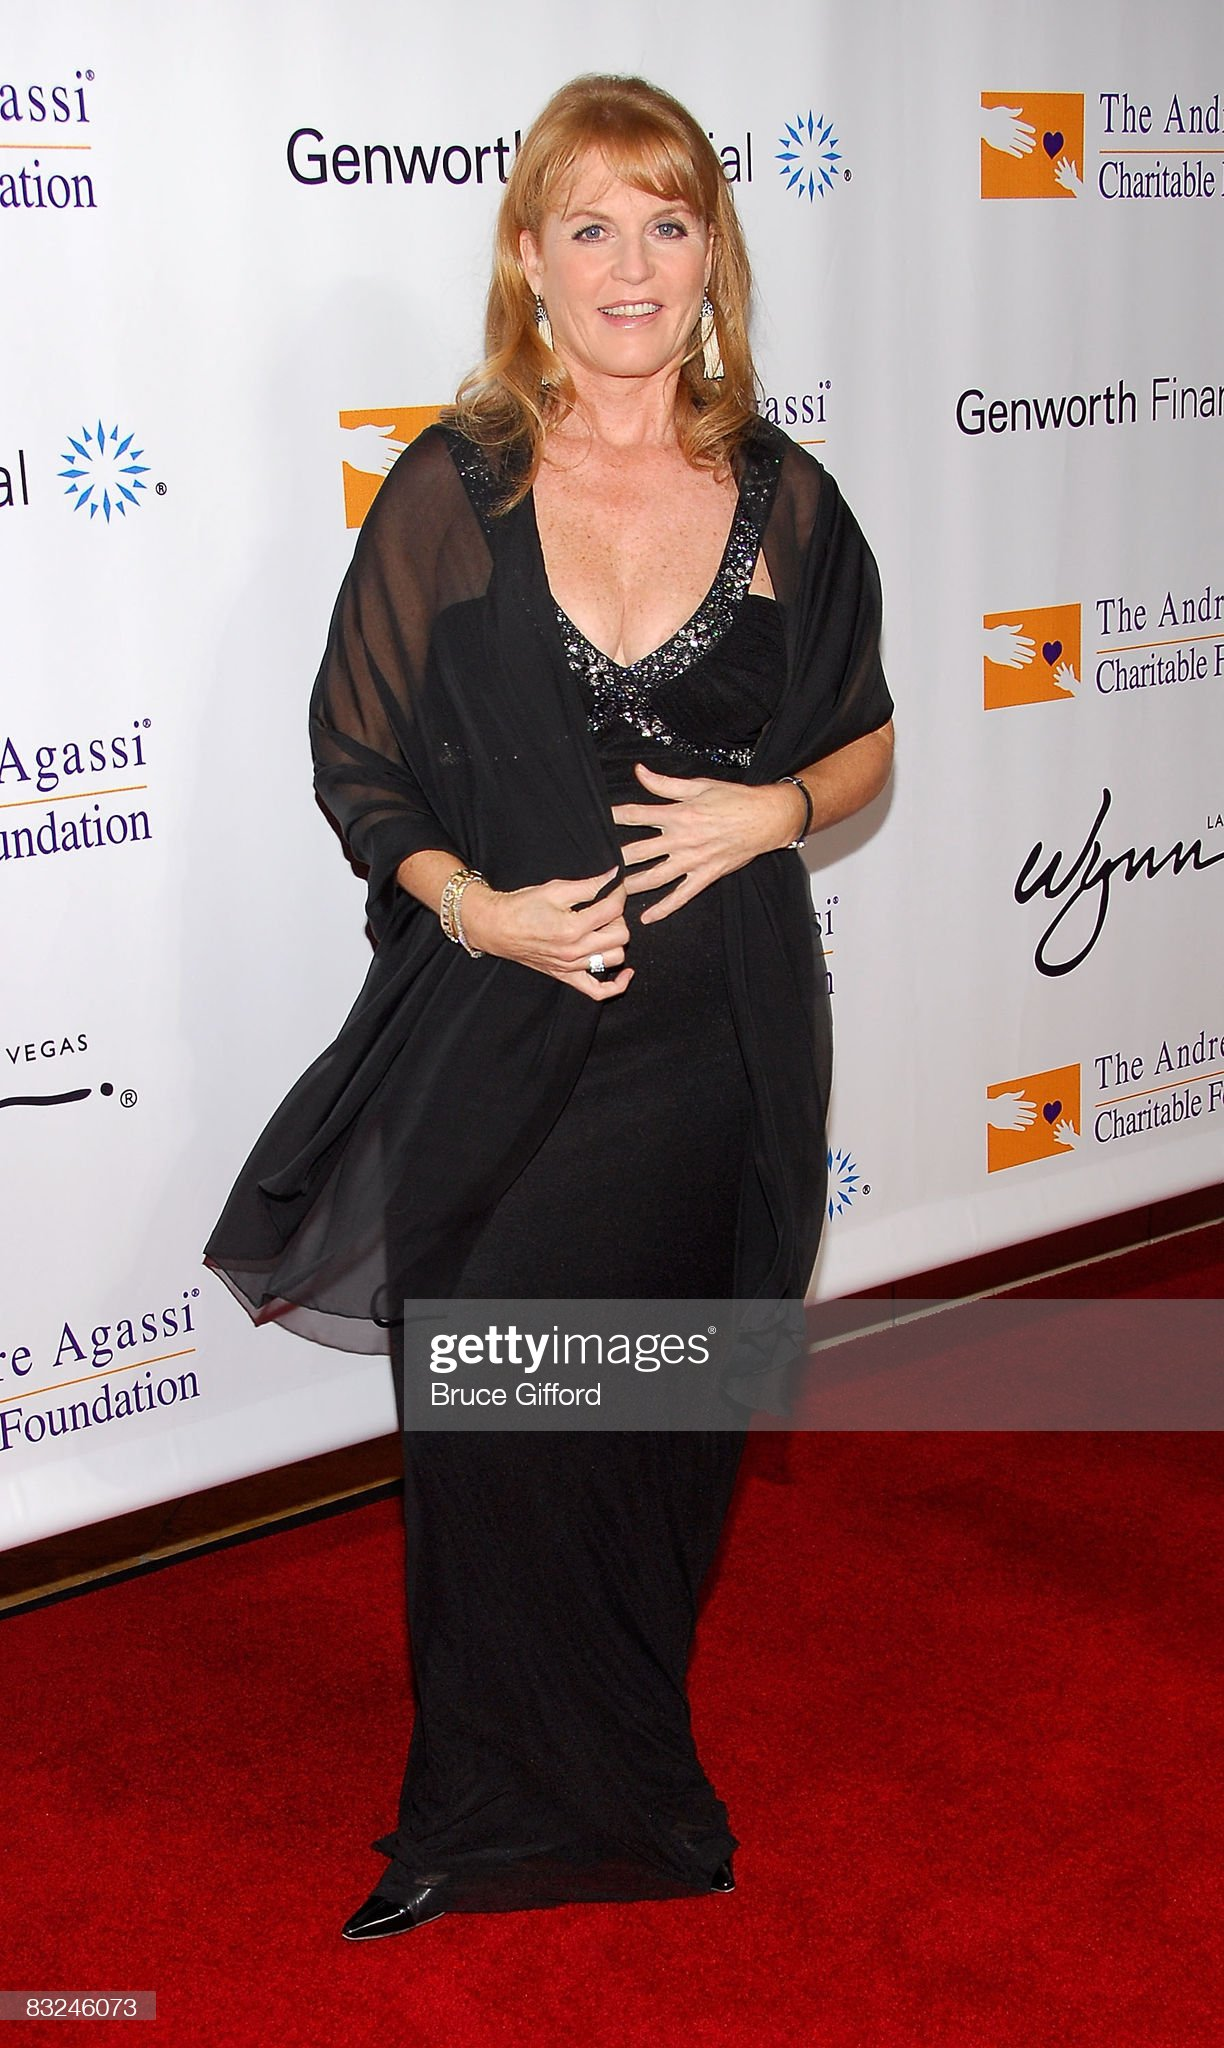 The Andre Agassi Charitable Foundation's 13th Annual Grand Slam for Children : News Photo